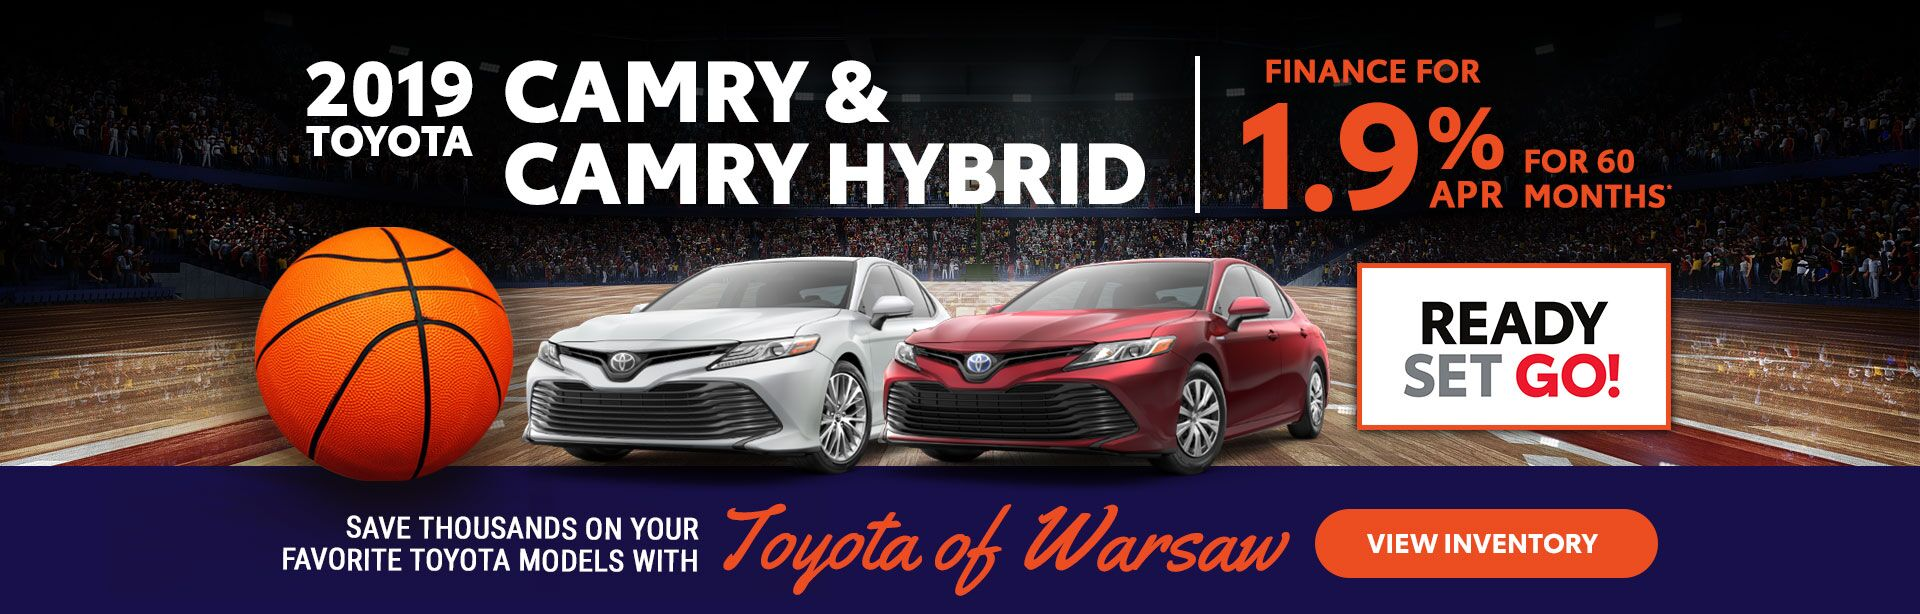 2019 Camry/Camry Hybrid: 1.9% APR for 60 months